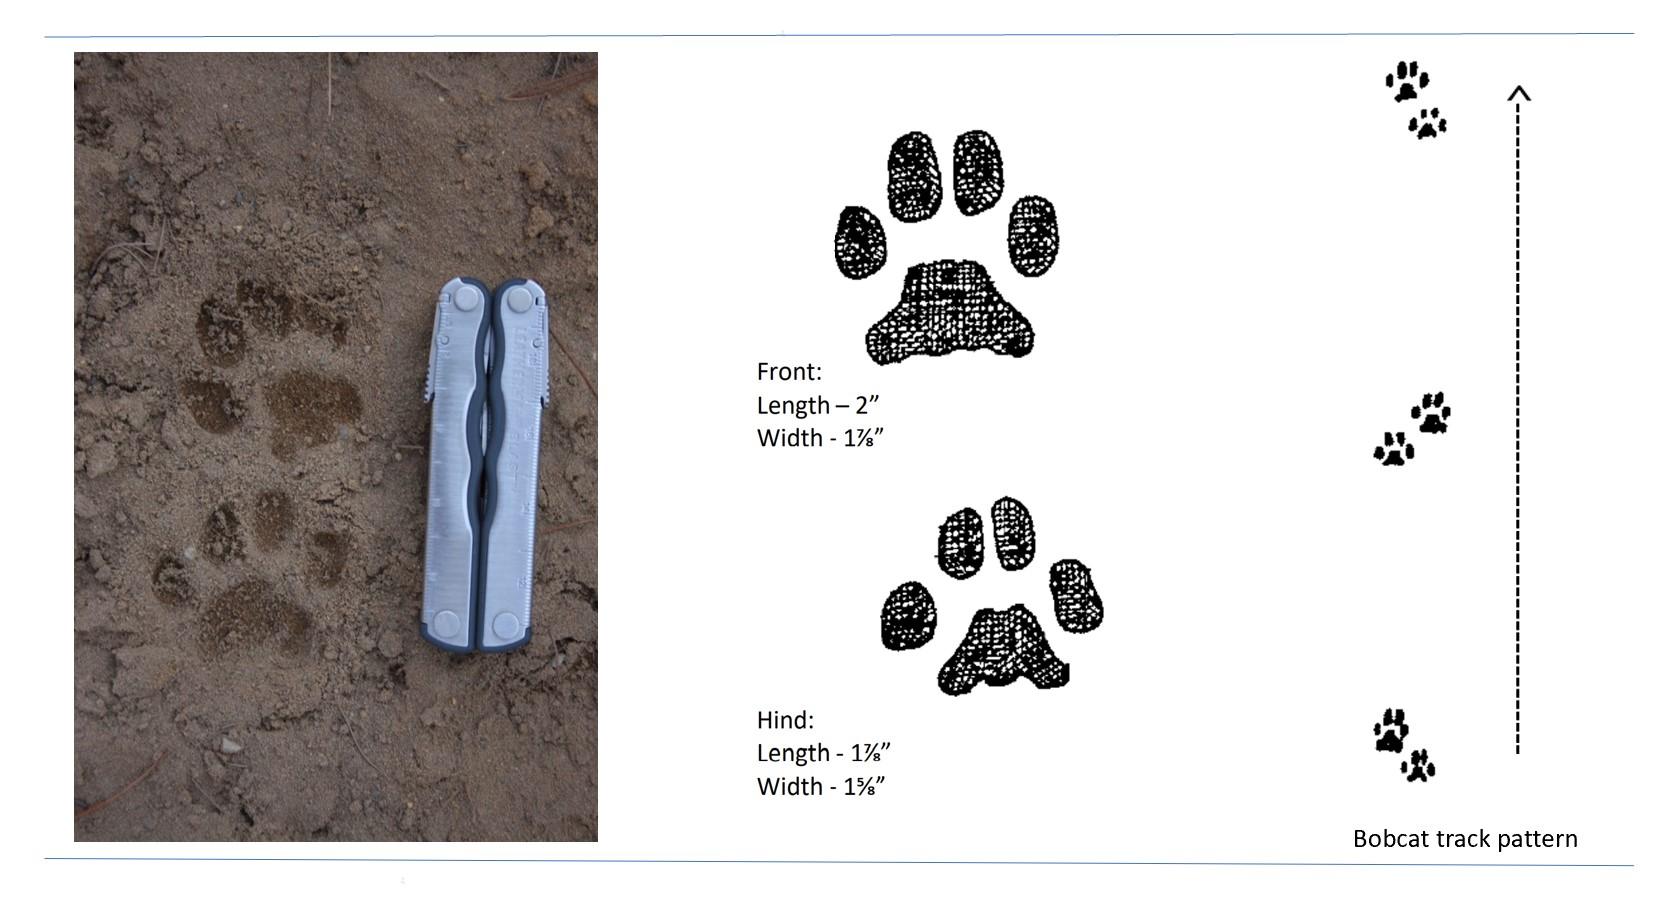 Photo and illustrated tracks of a bobcat.